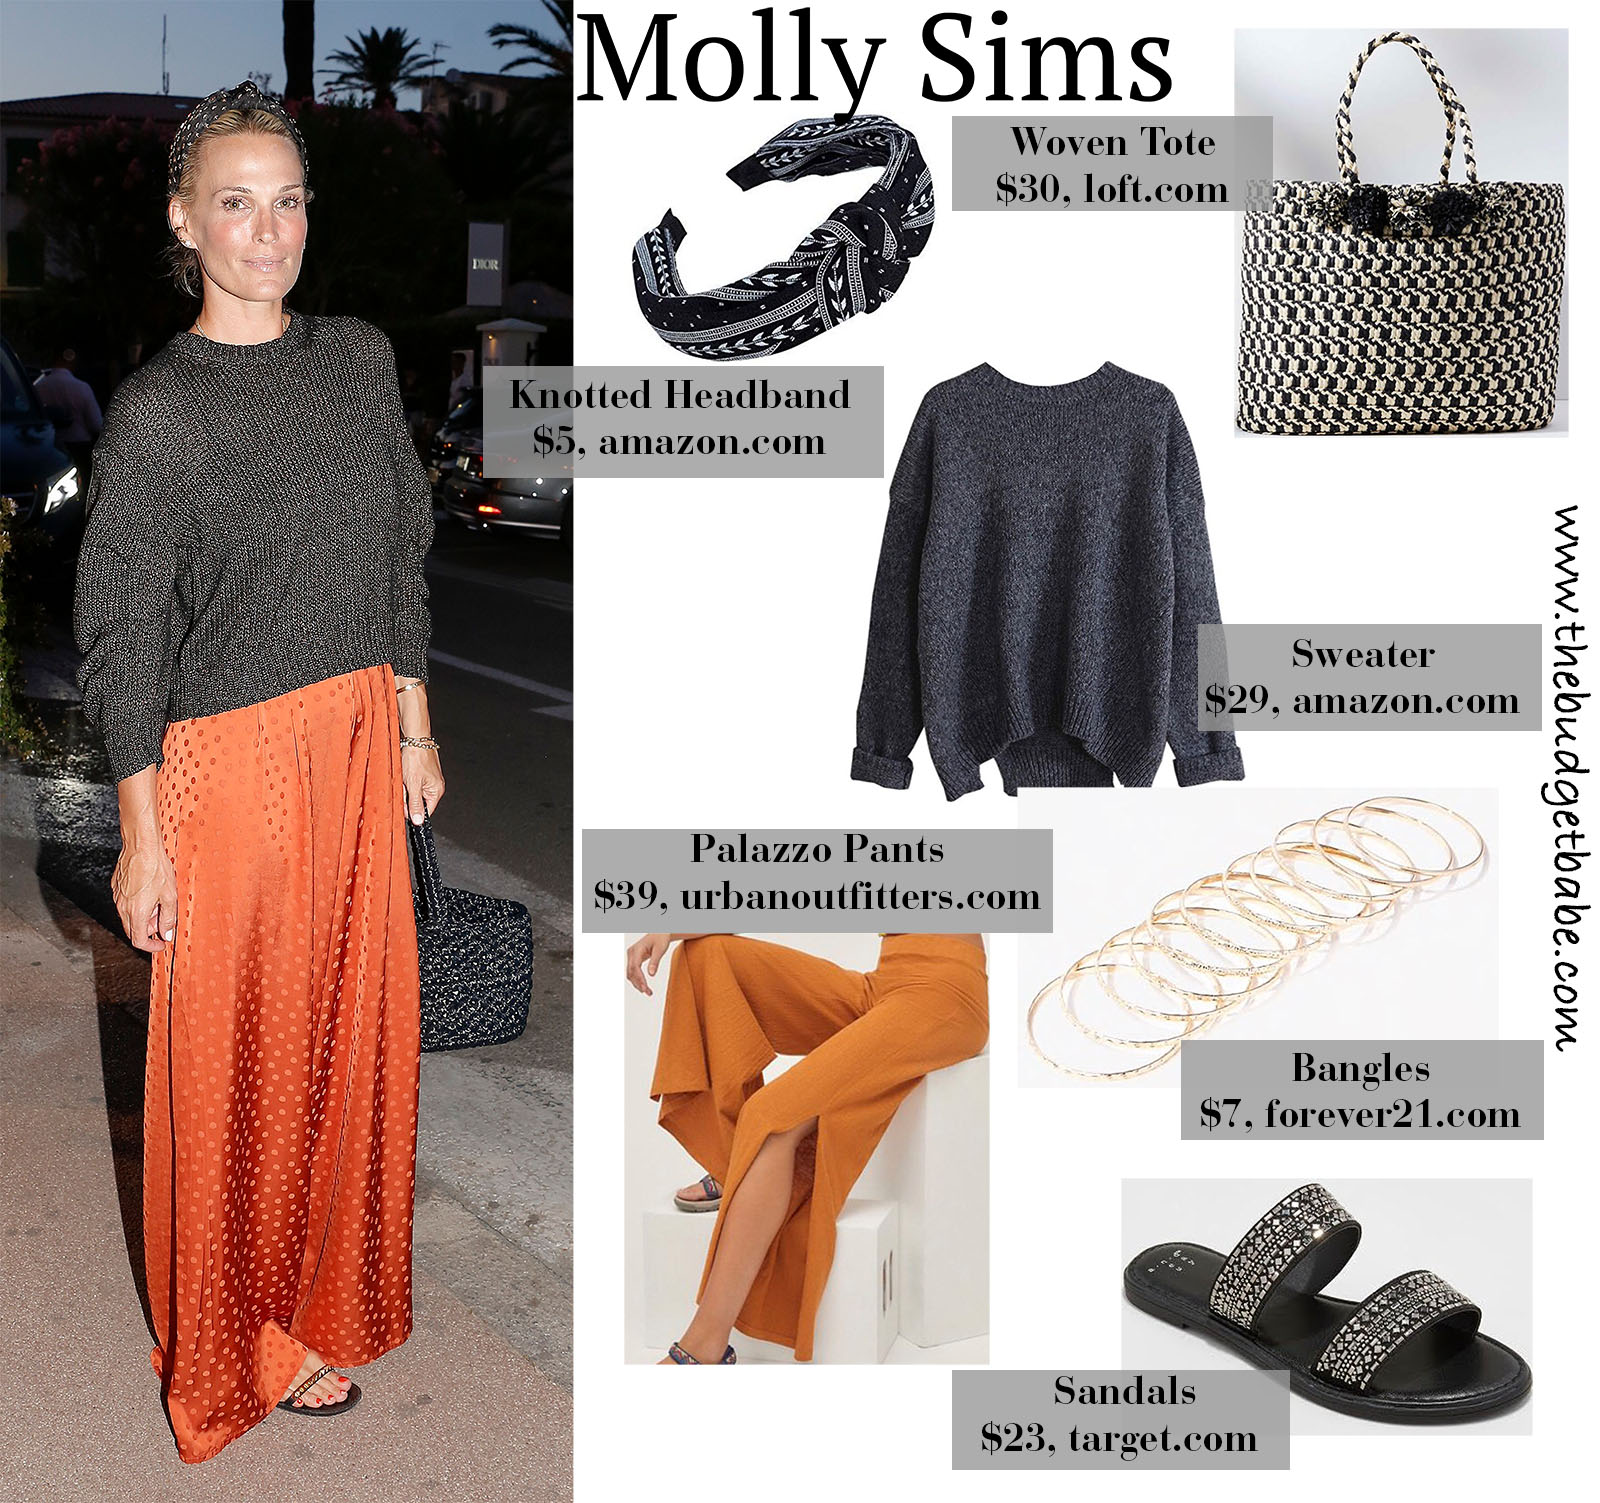 Molly Sims Knit Sweater, Orange Palazzo Pants, Knotted Headband